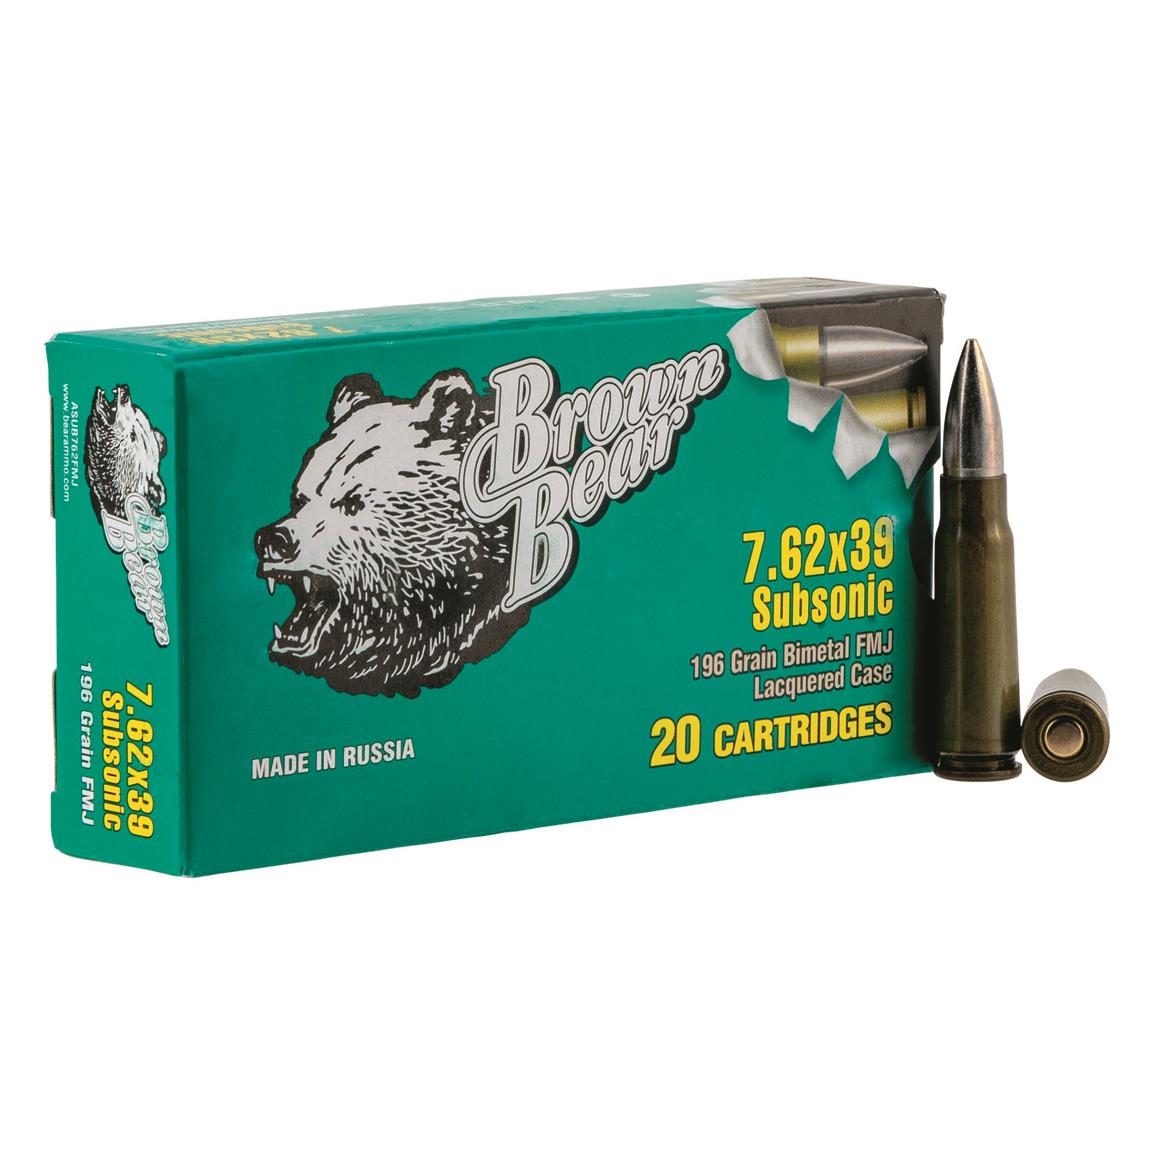 Brown Bear Steel Case Subsonic, 7.62x39mm, FMJ, 196 Grain, 20 Rounds